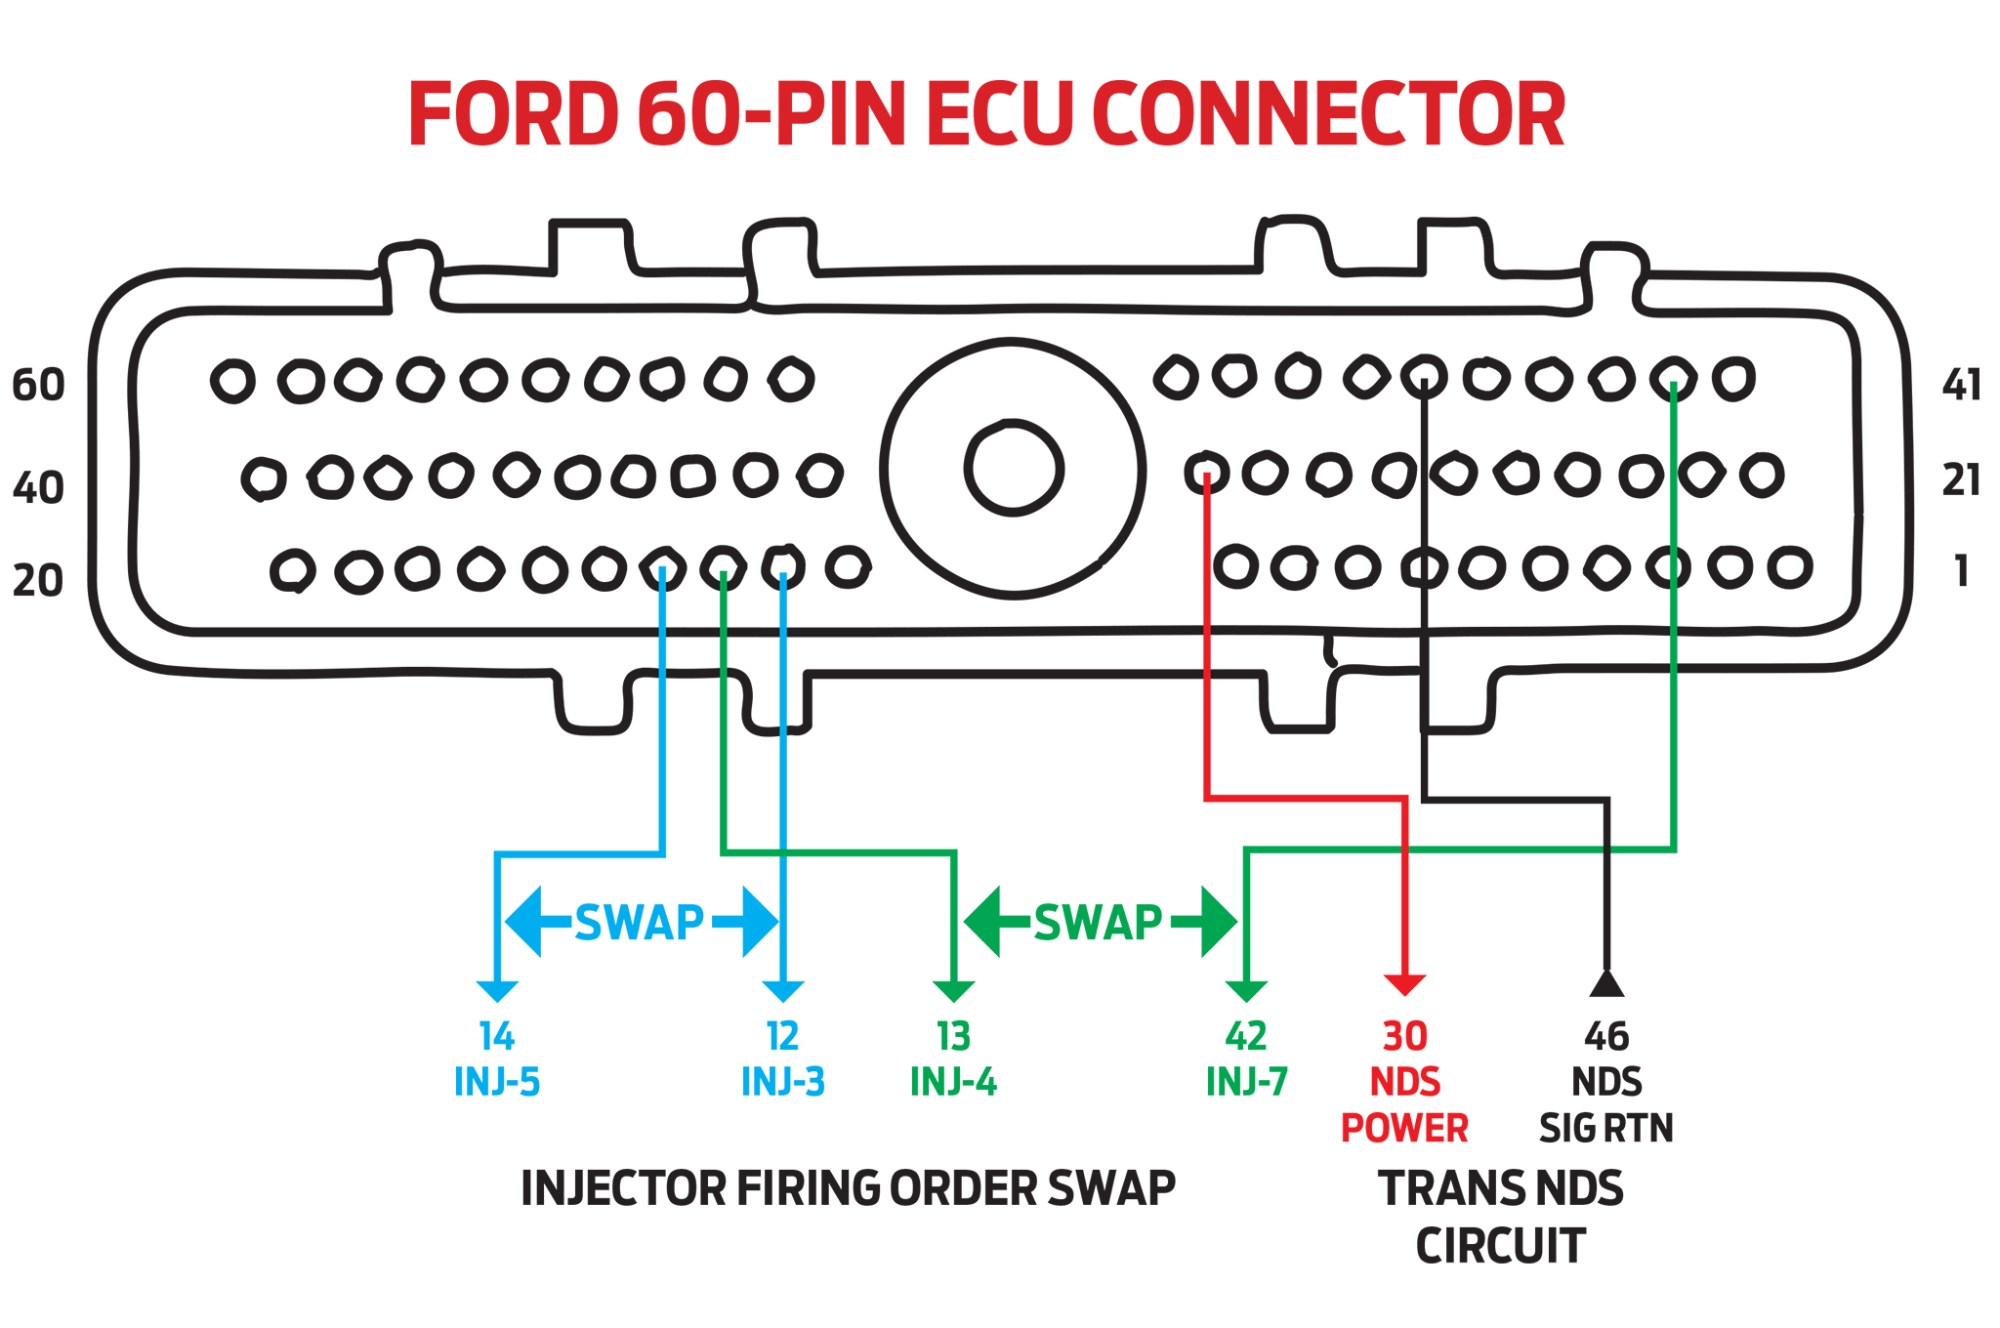 hight resolution of sanchez fixed the firing order by swapping the injector firing wires in the ecu s 60